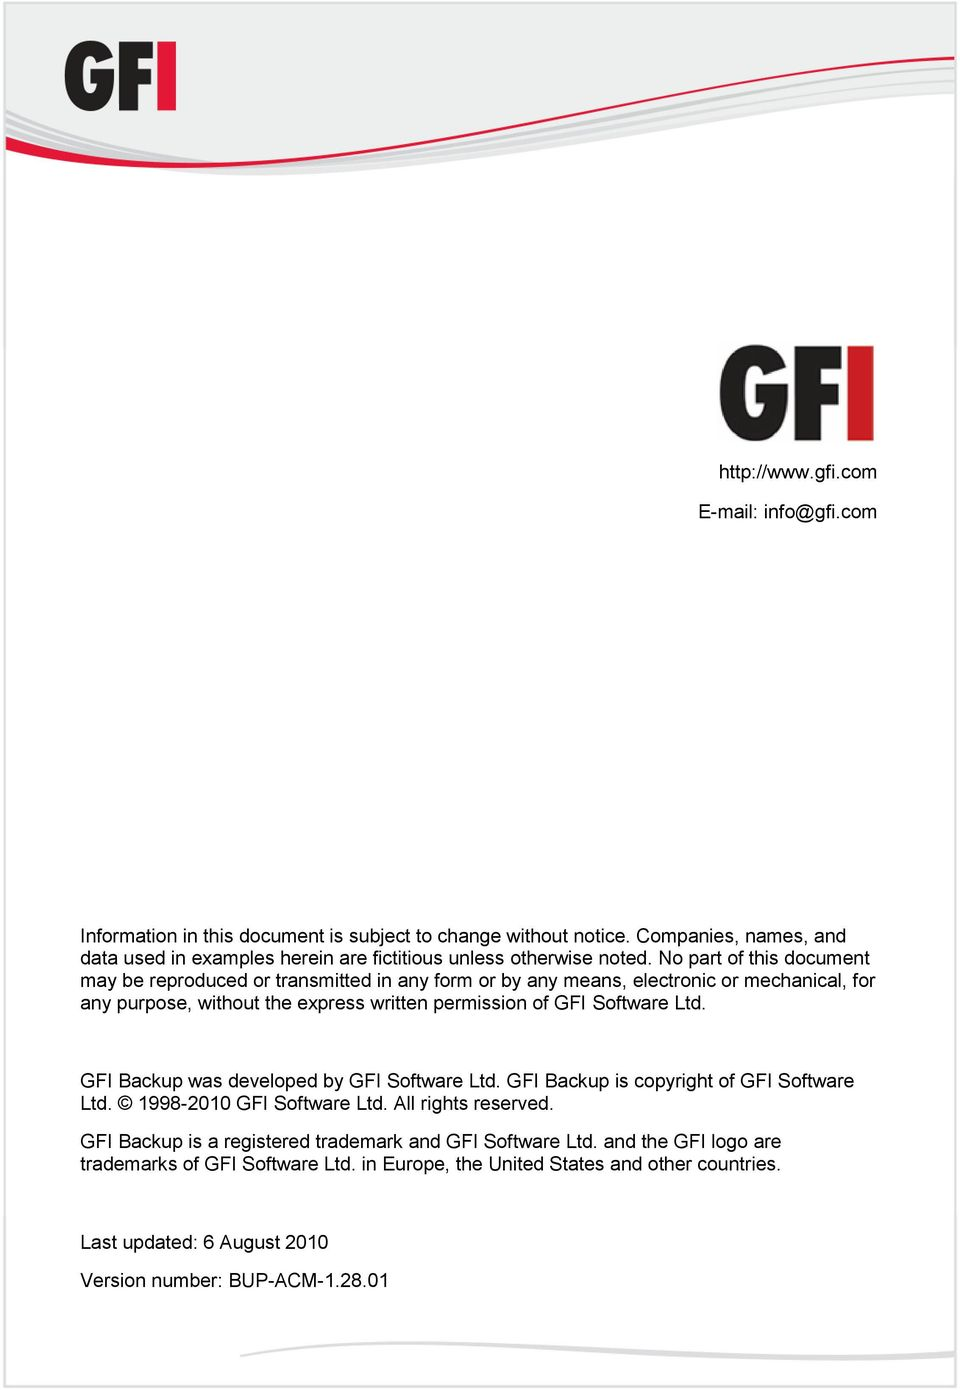 No part of this document may be reproduced or transmitted in any form or by any means, electronic or mechanical, for any purpose, without the express written permission of GFI Software